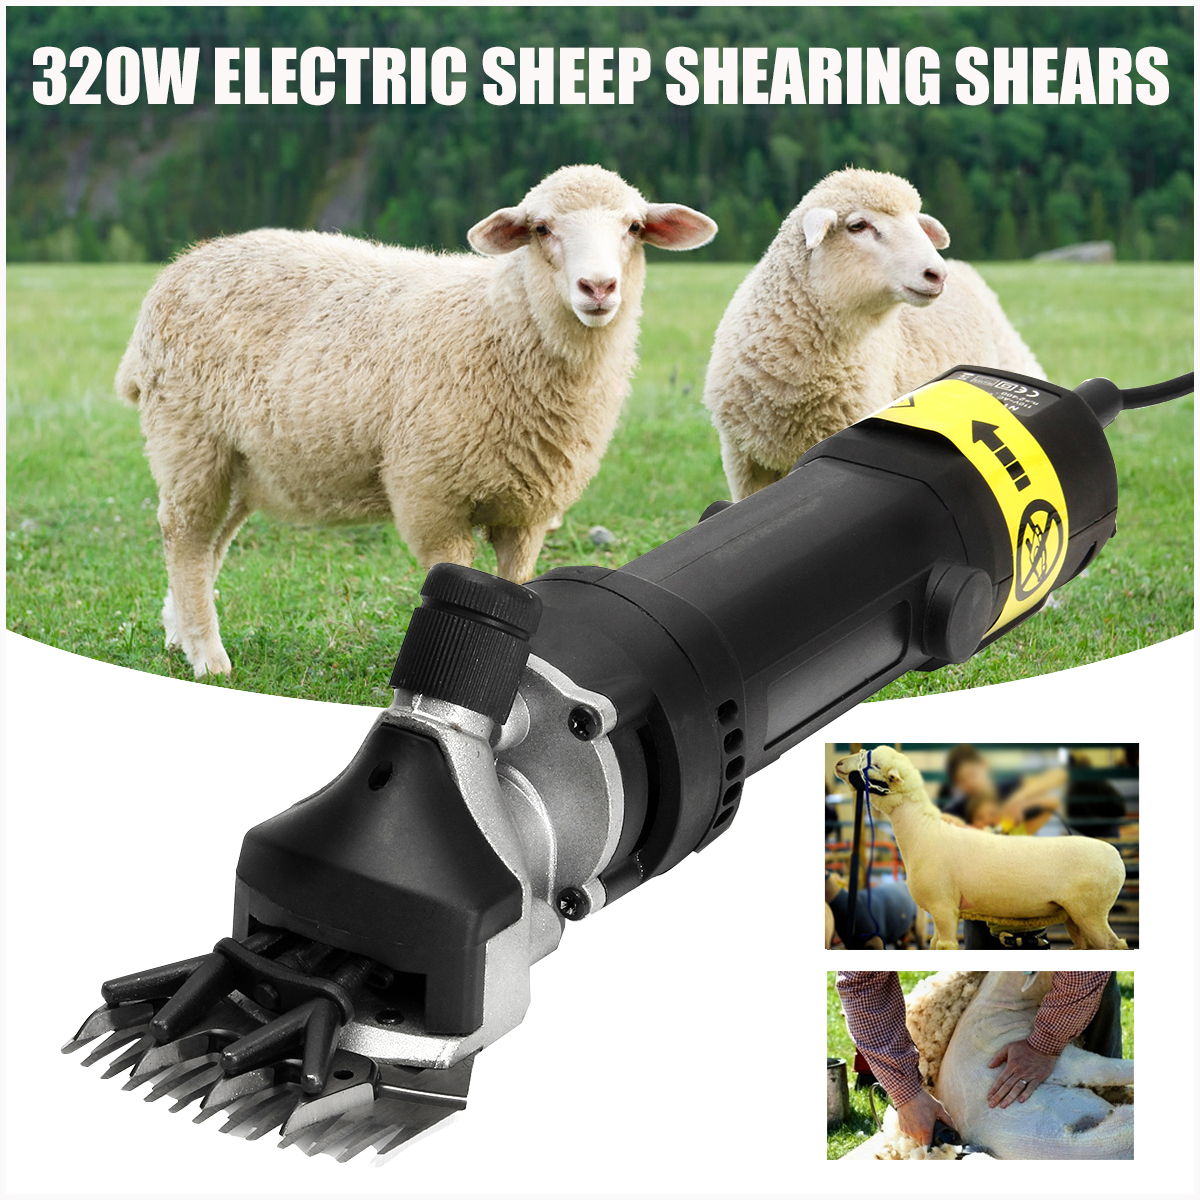 110V/220V 320W Electric Sheep Shearing Clipper Scissors Shears Cutter Goat Clipper Machines Wool scissor new 680w sheep wool clipper electric sheep goats shearing clipper shears 1 set 13 straight tooth blade comb